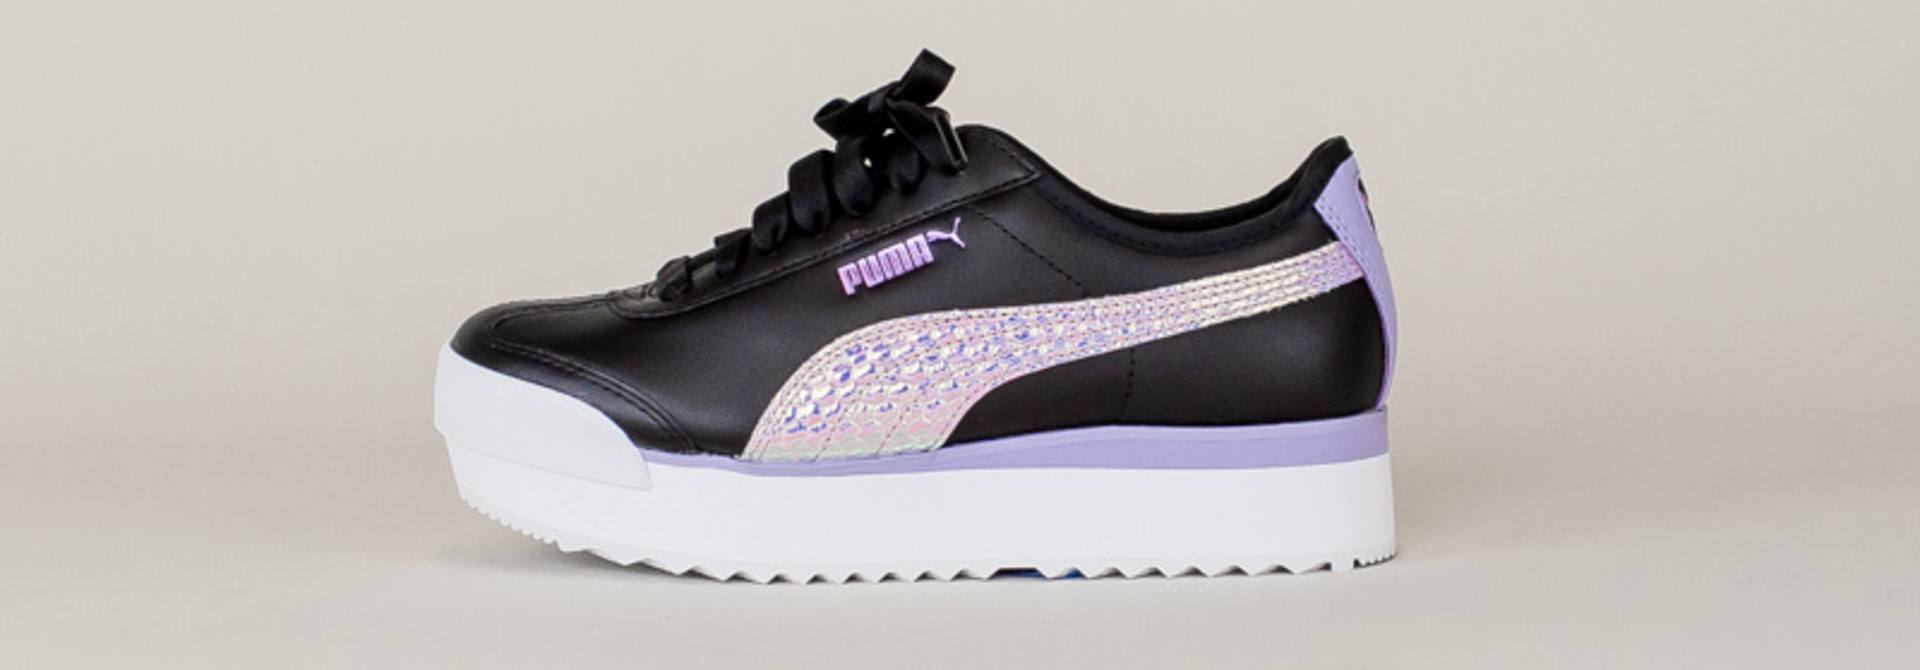 Puma Roma Amor Metallic - Black/ Purple